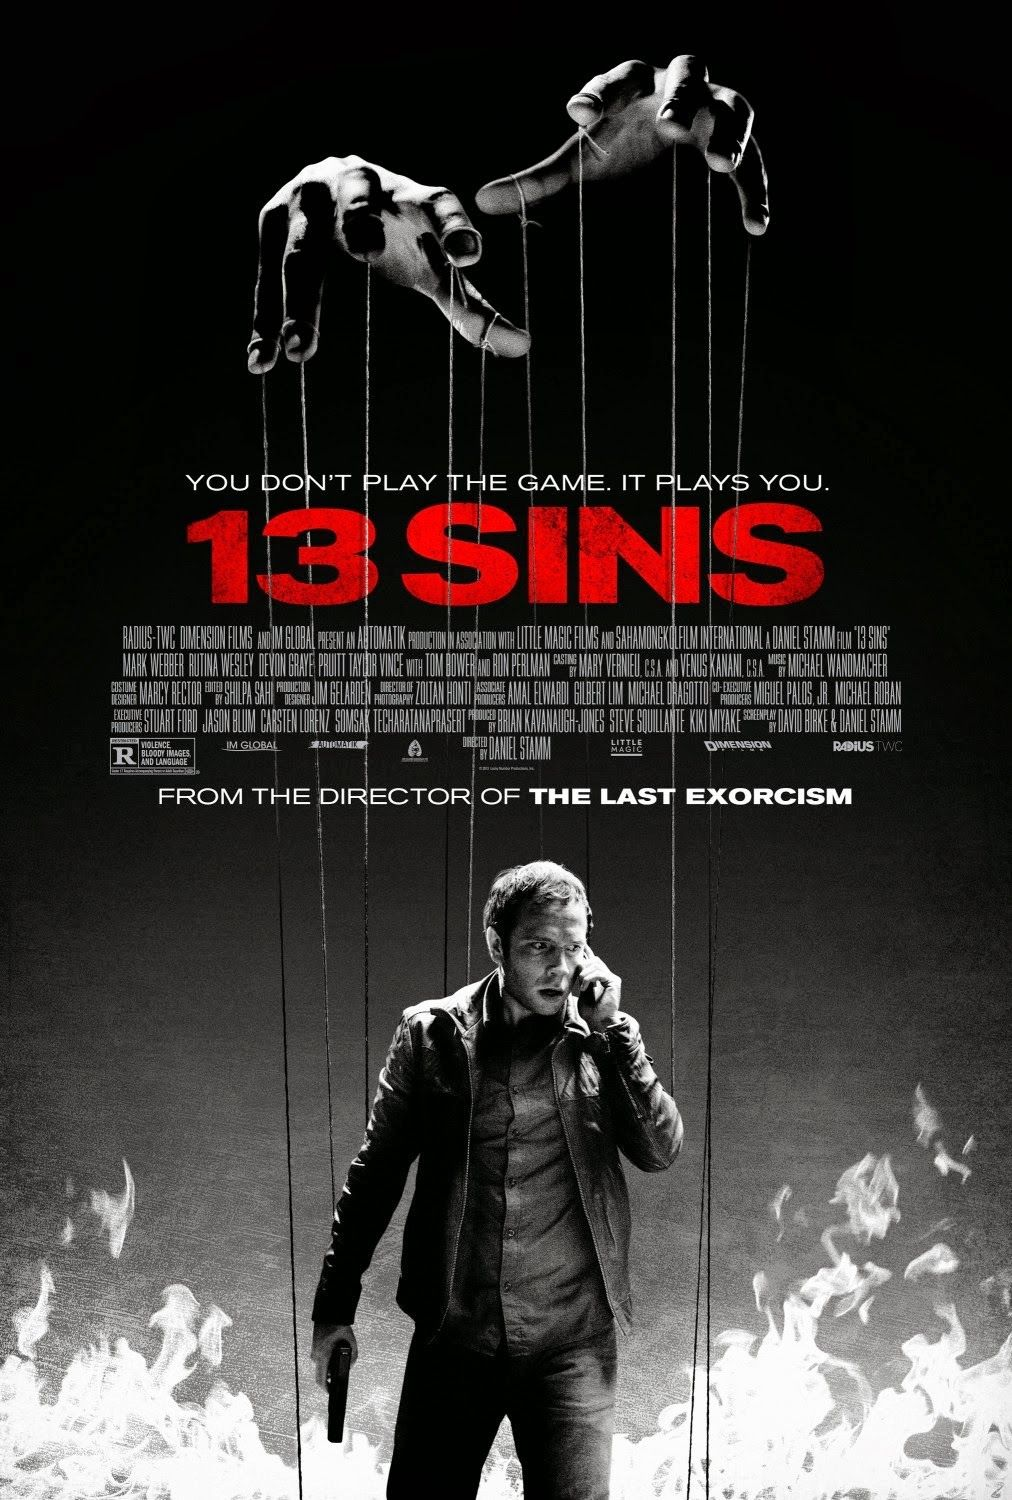 13 Sins 2014 Horror Thriller Comedy Movie Directed By Daniel